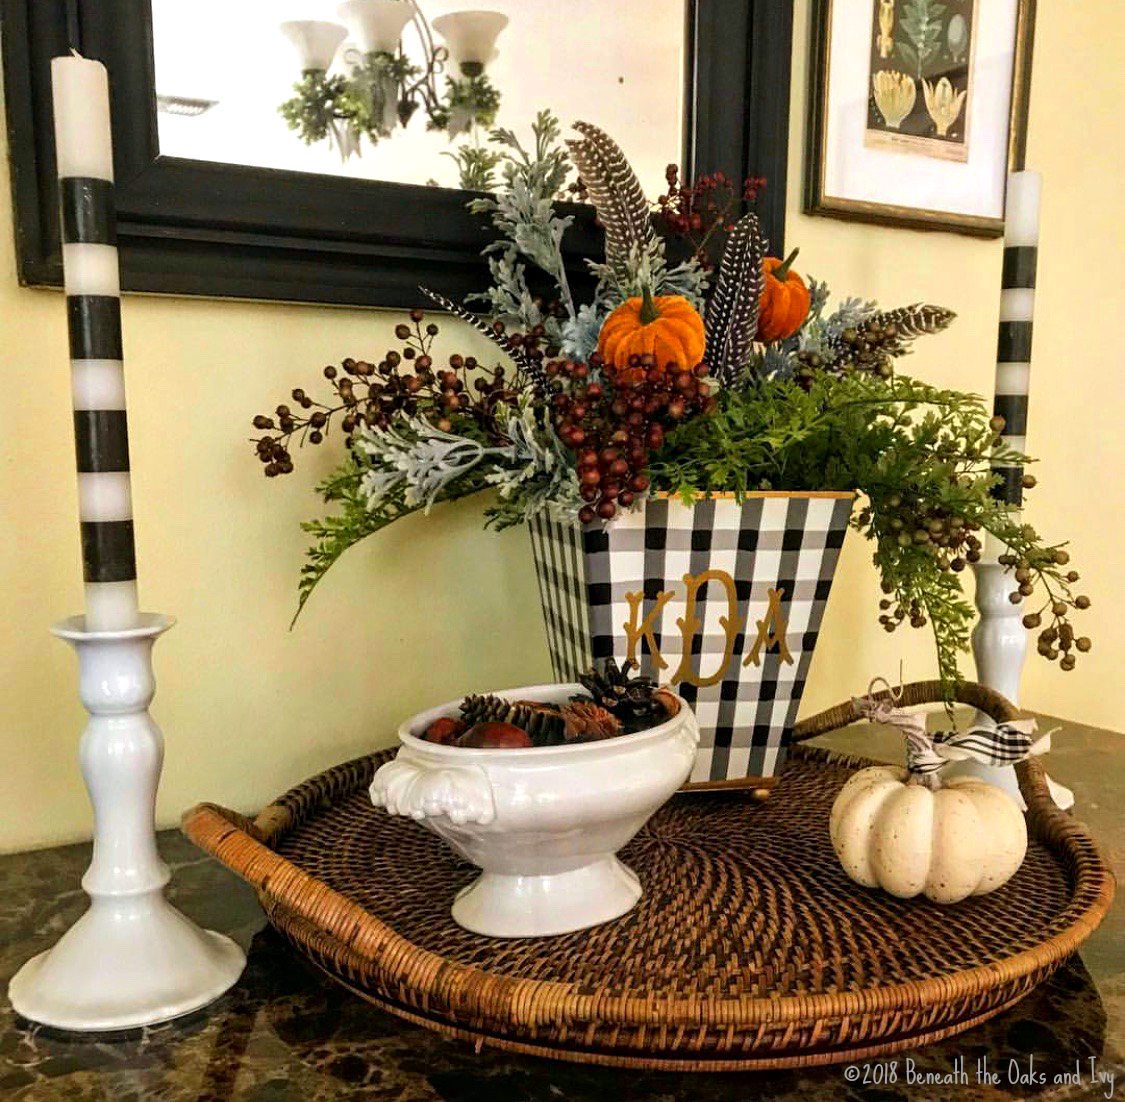 Black and White Tapers | White pottery | Black and White Vase with Flowers | Instagram Inpiration That Stopped My Scroll | www.sandykayemoss.com